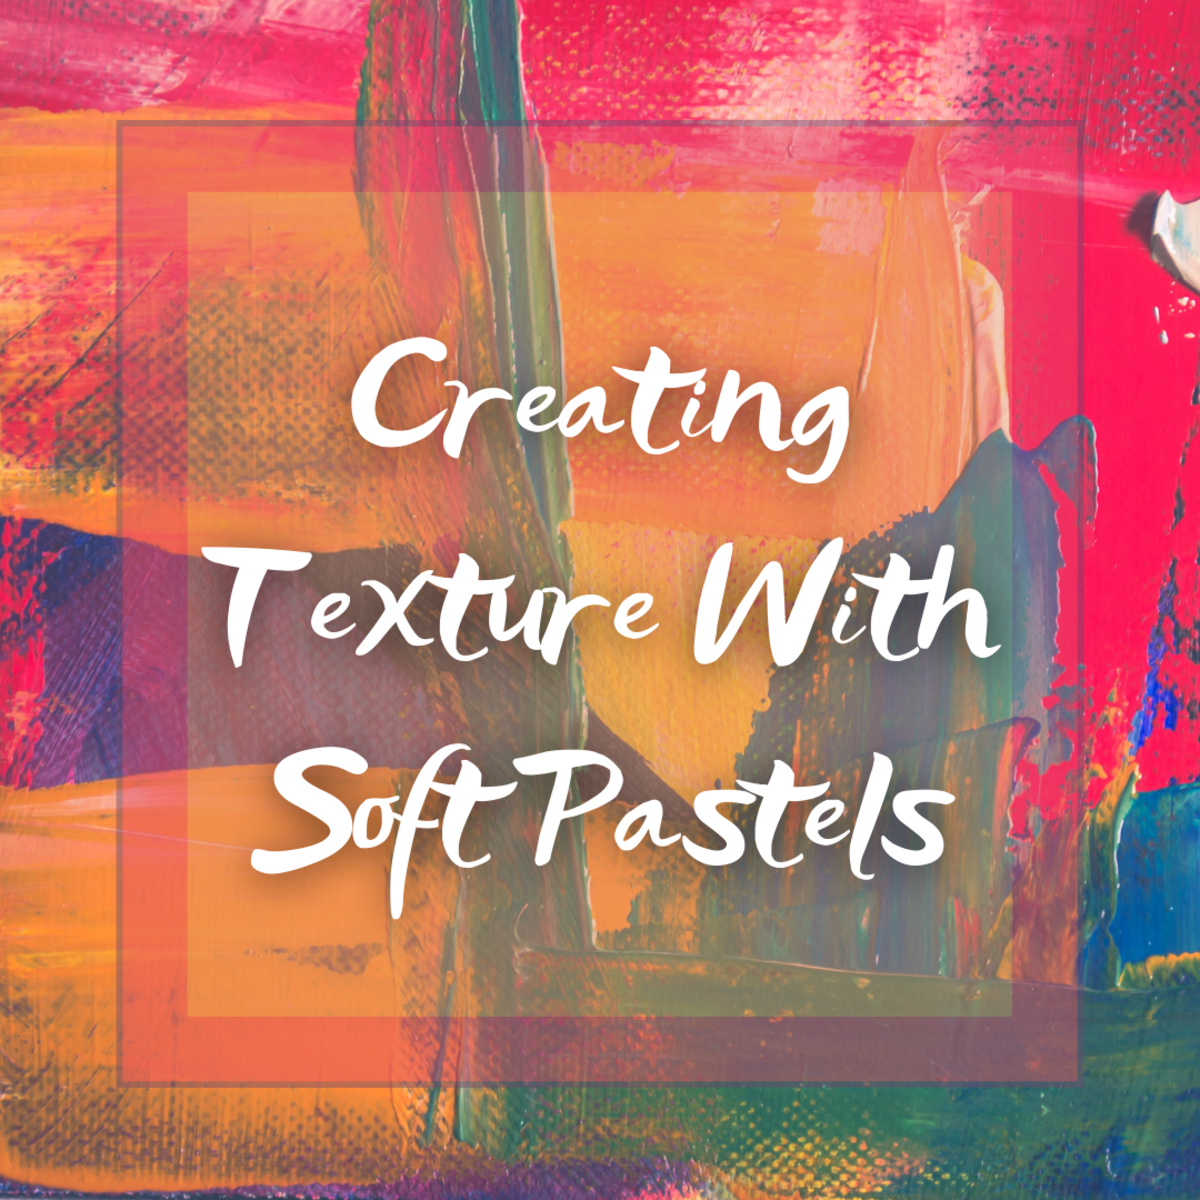 How to Create Texture With Artists' Soft Pastels